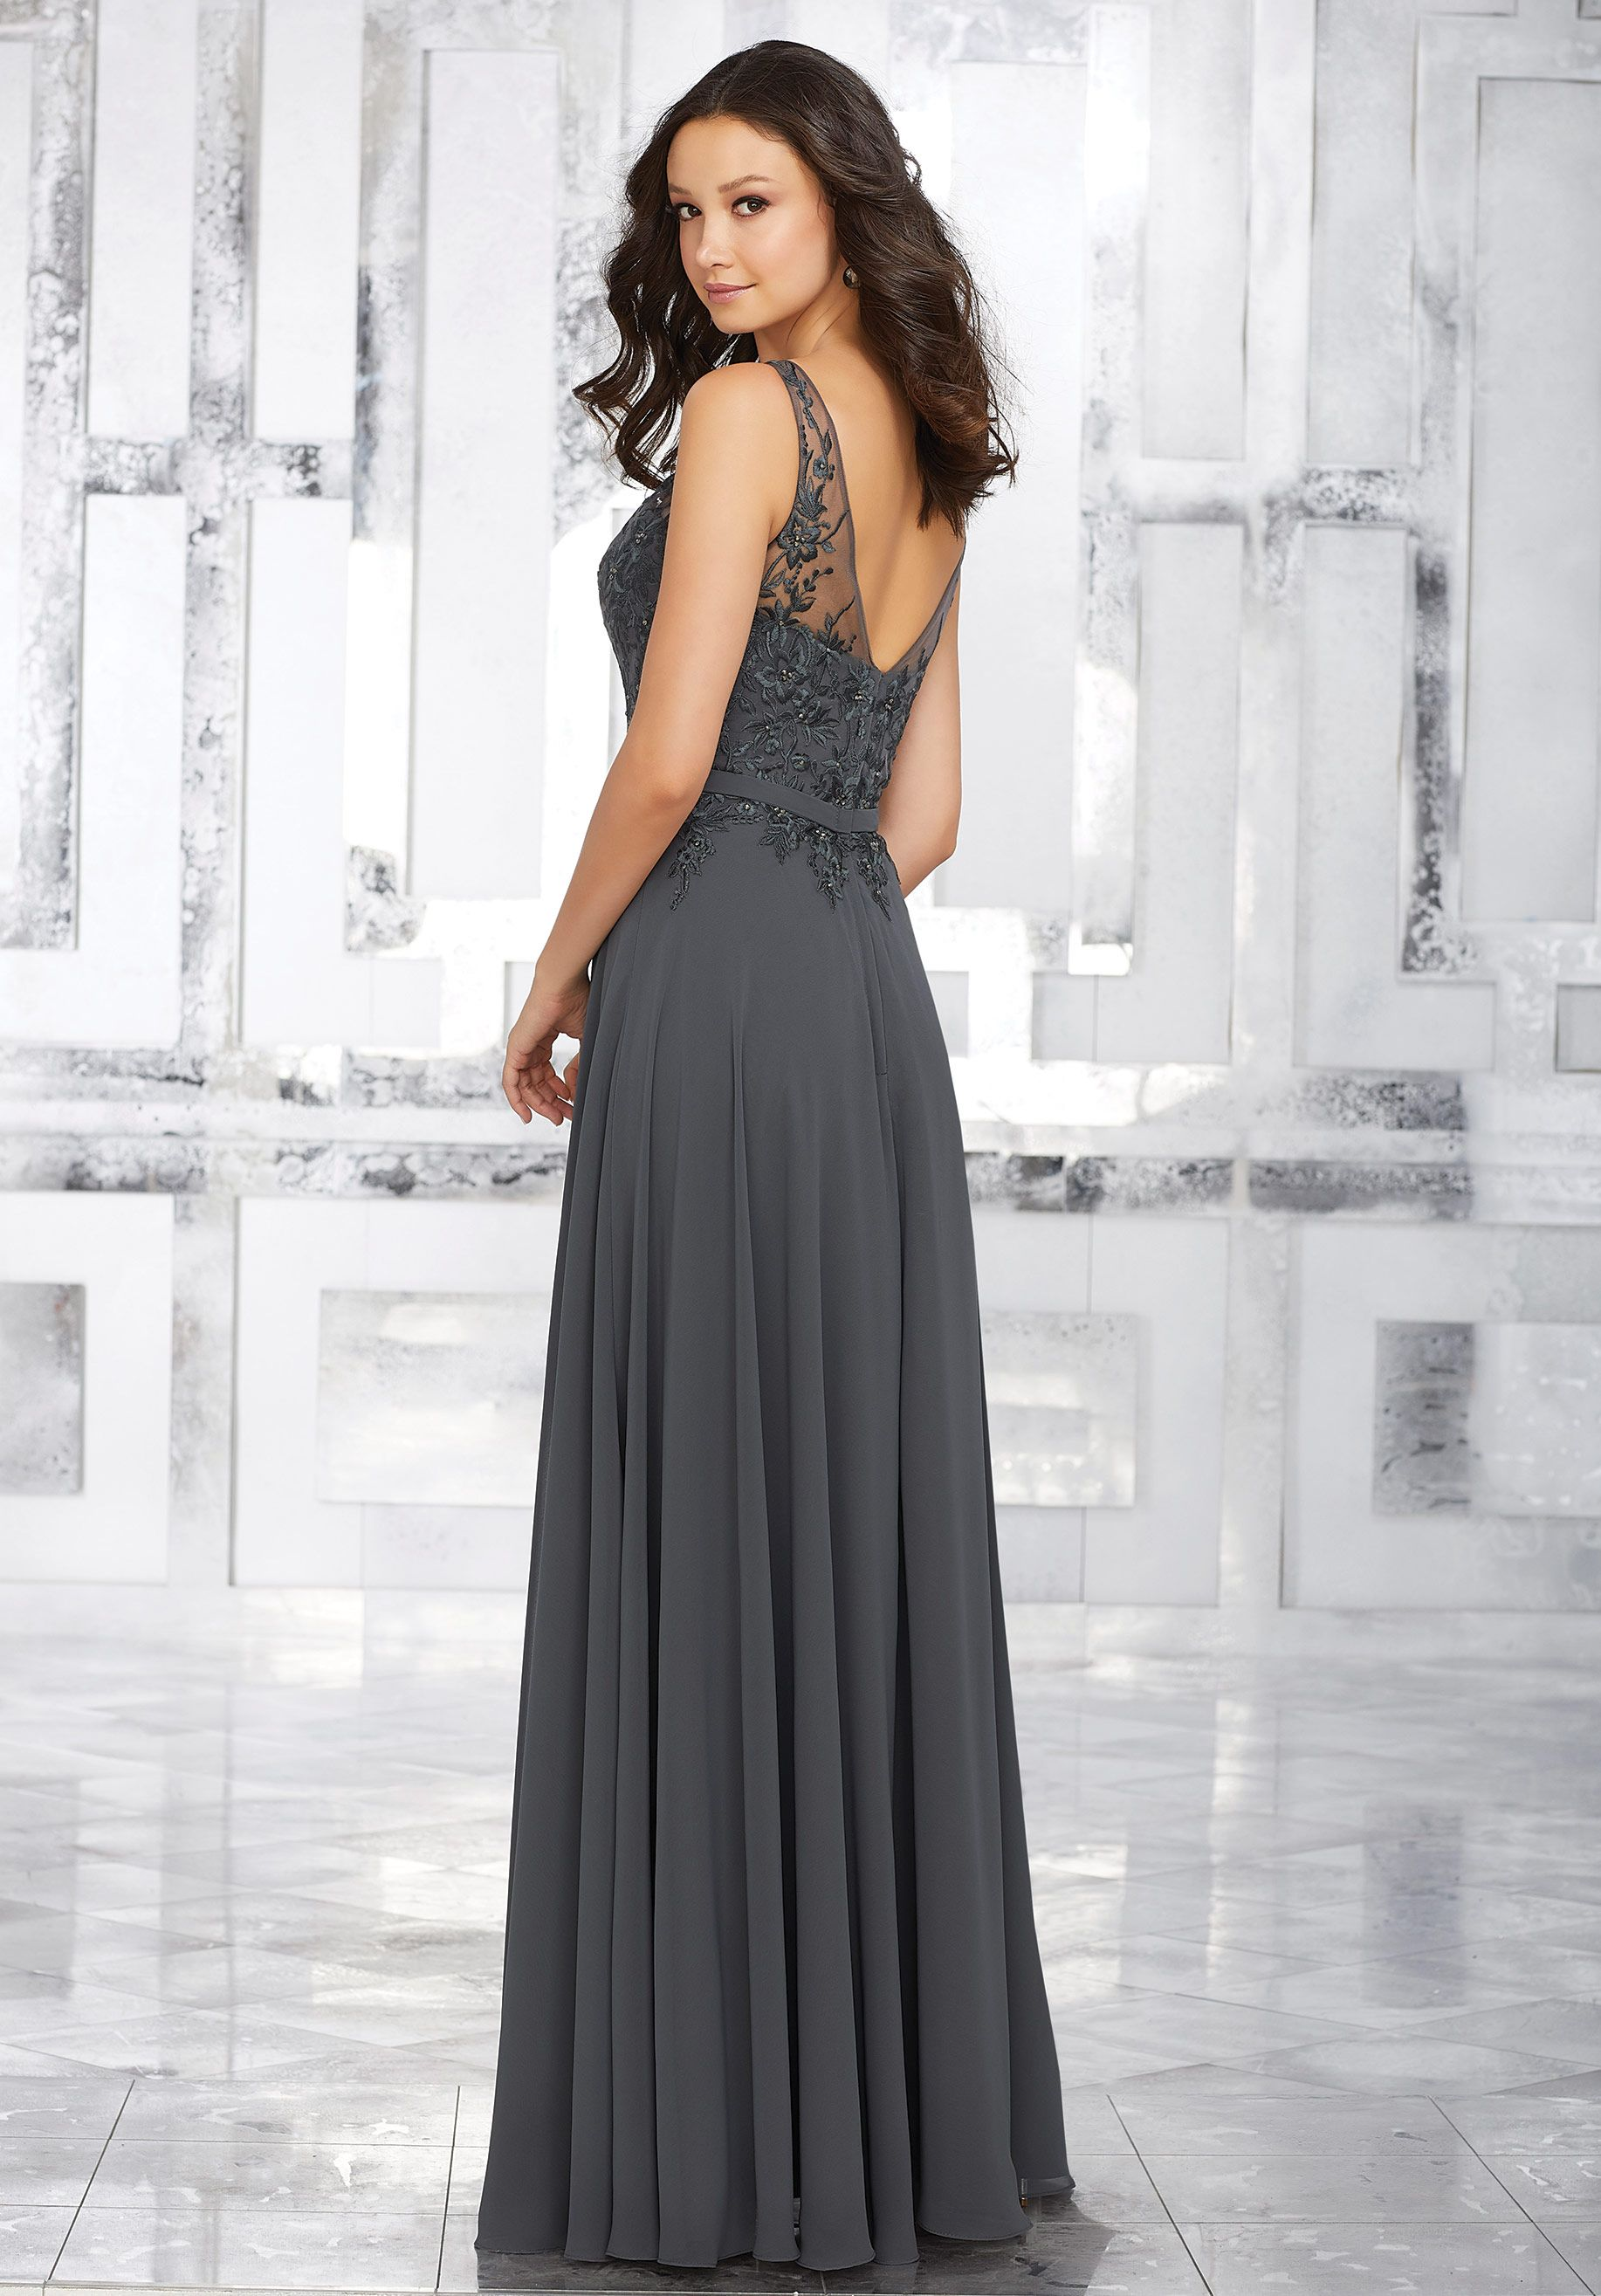 0a70ed06b2adc Elaborate Embroidery and Beading Accents the Bodice of This Beautiful Chiffon  Bridesmaids Dress. An Illusion Neckline and Matching Waistband Complete the  ...